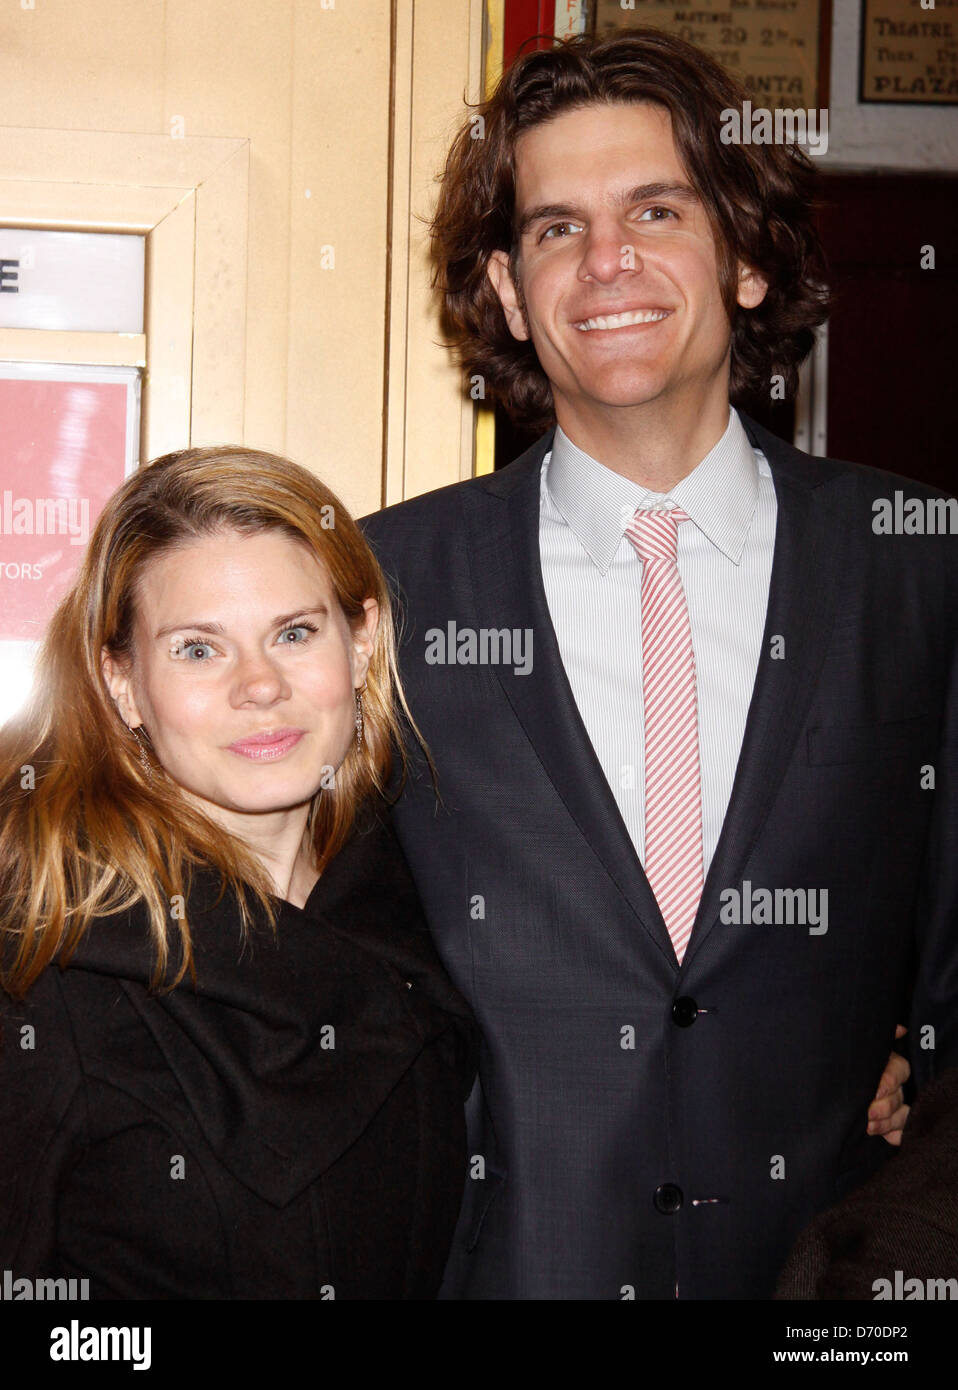 Celia Keenan-Bolger and Alex Timbers Opening night of the MCC production of the musical 'Carrie' at the - Stock Image